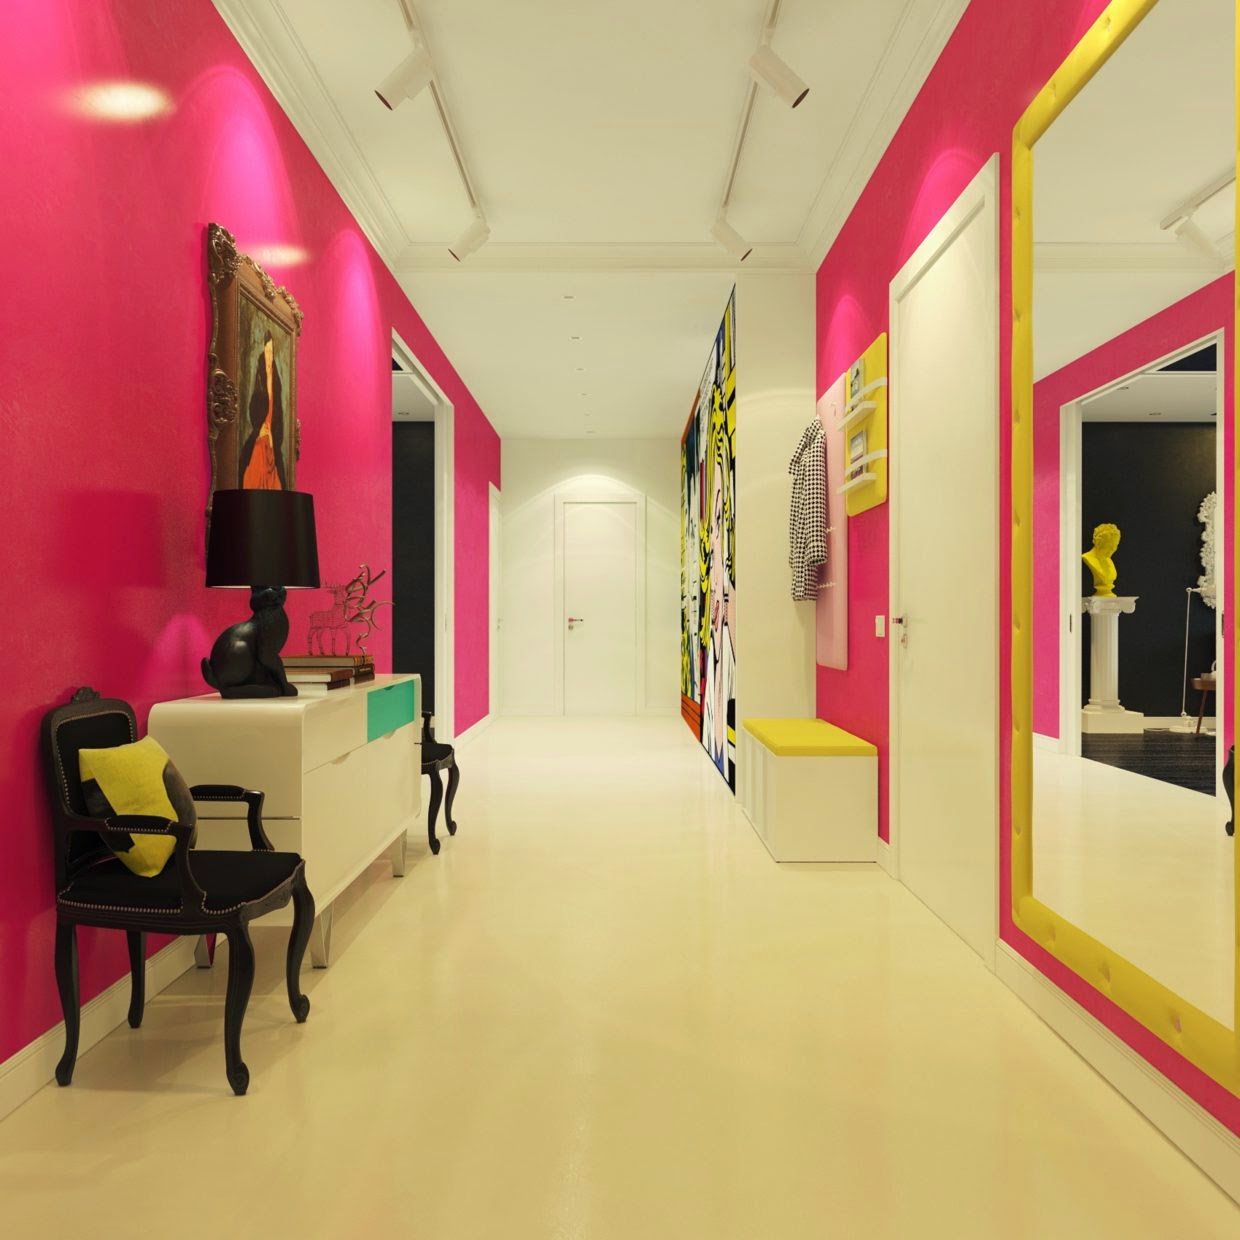 hallway Pop Art Style Apartment Decorating